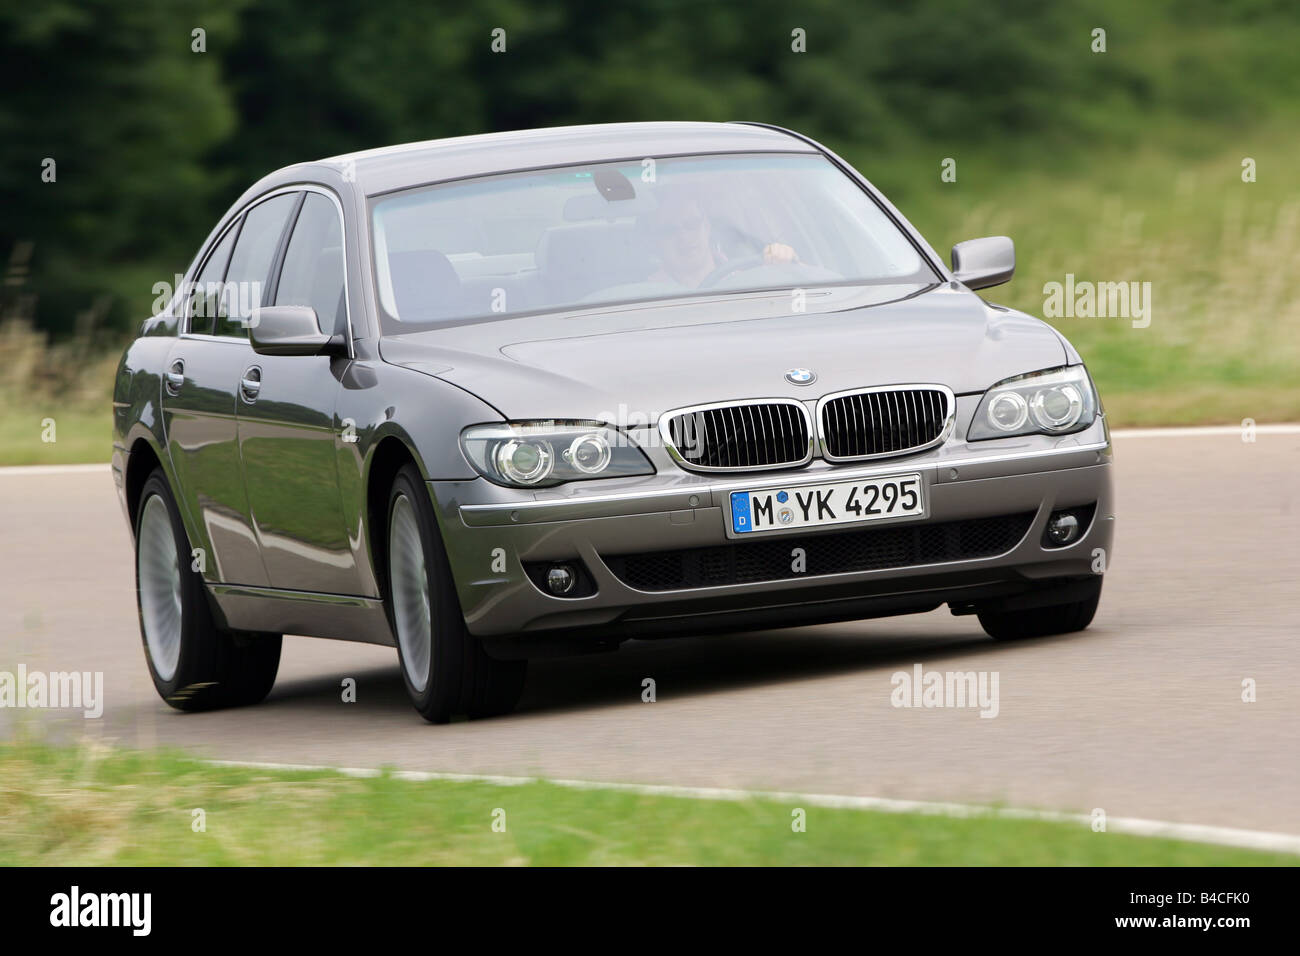 bmw 745d model year 2005 anthracite driving diagonal from the rh alamy com BMW 7 Series 2018 BMW 6 Series